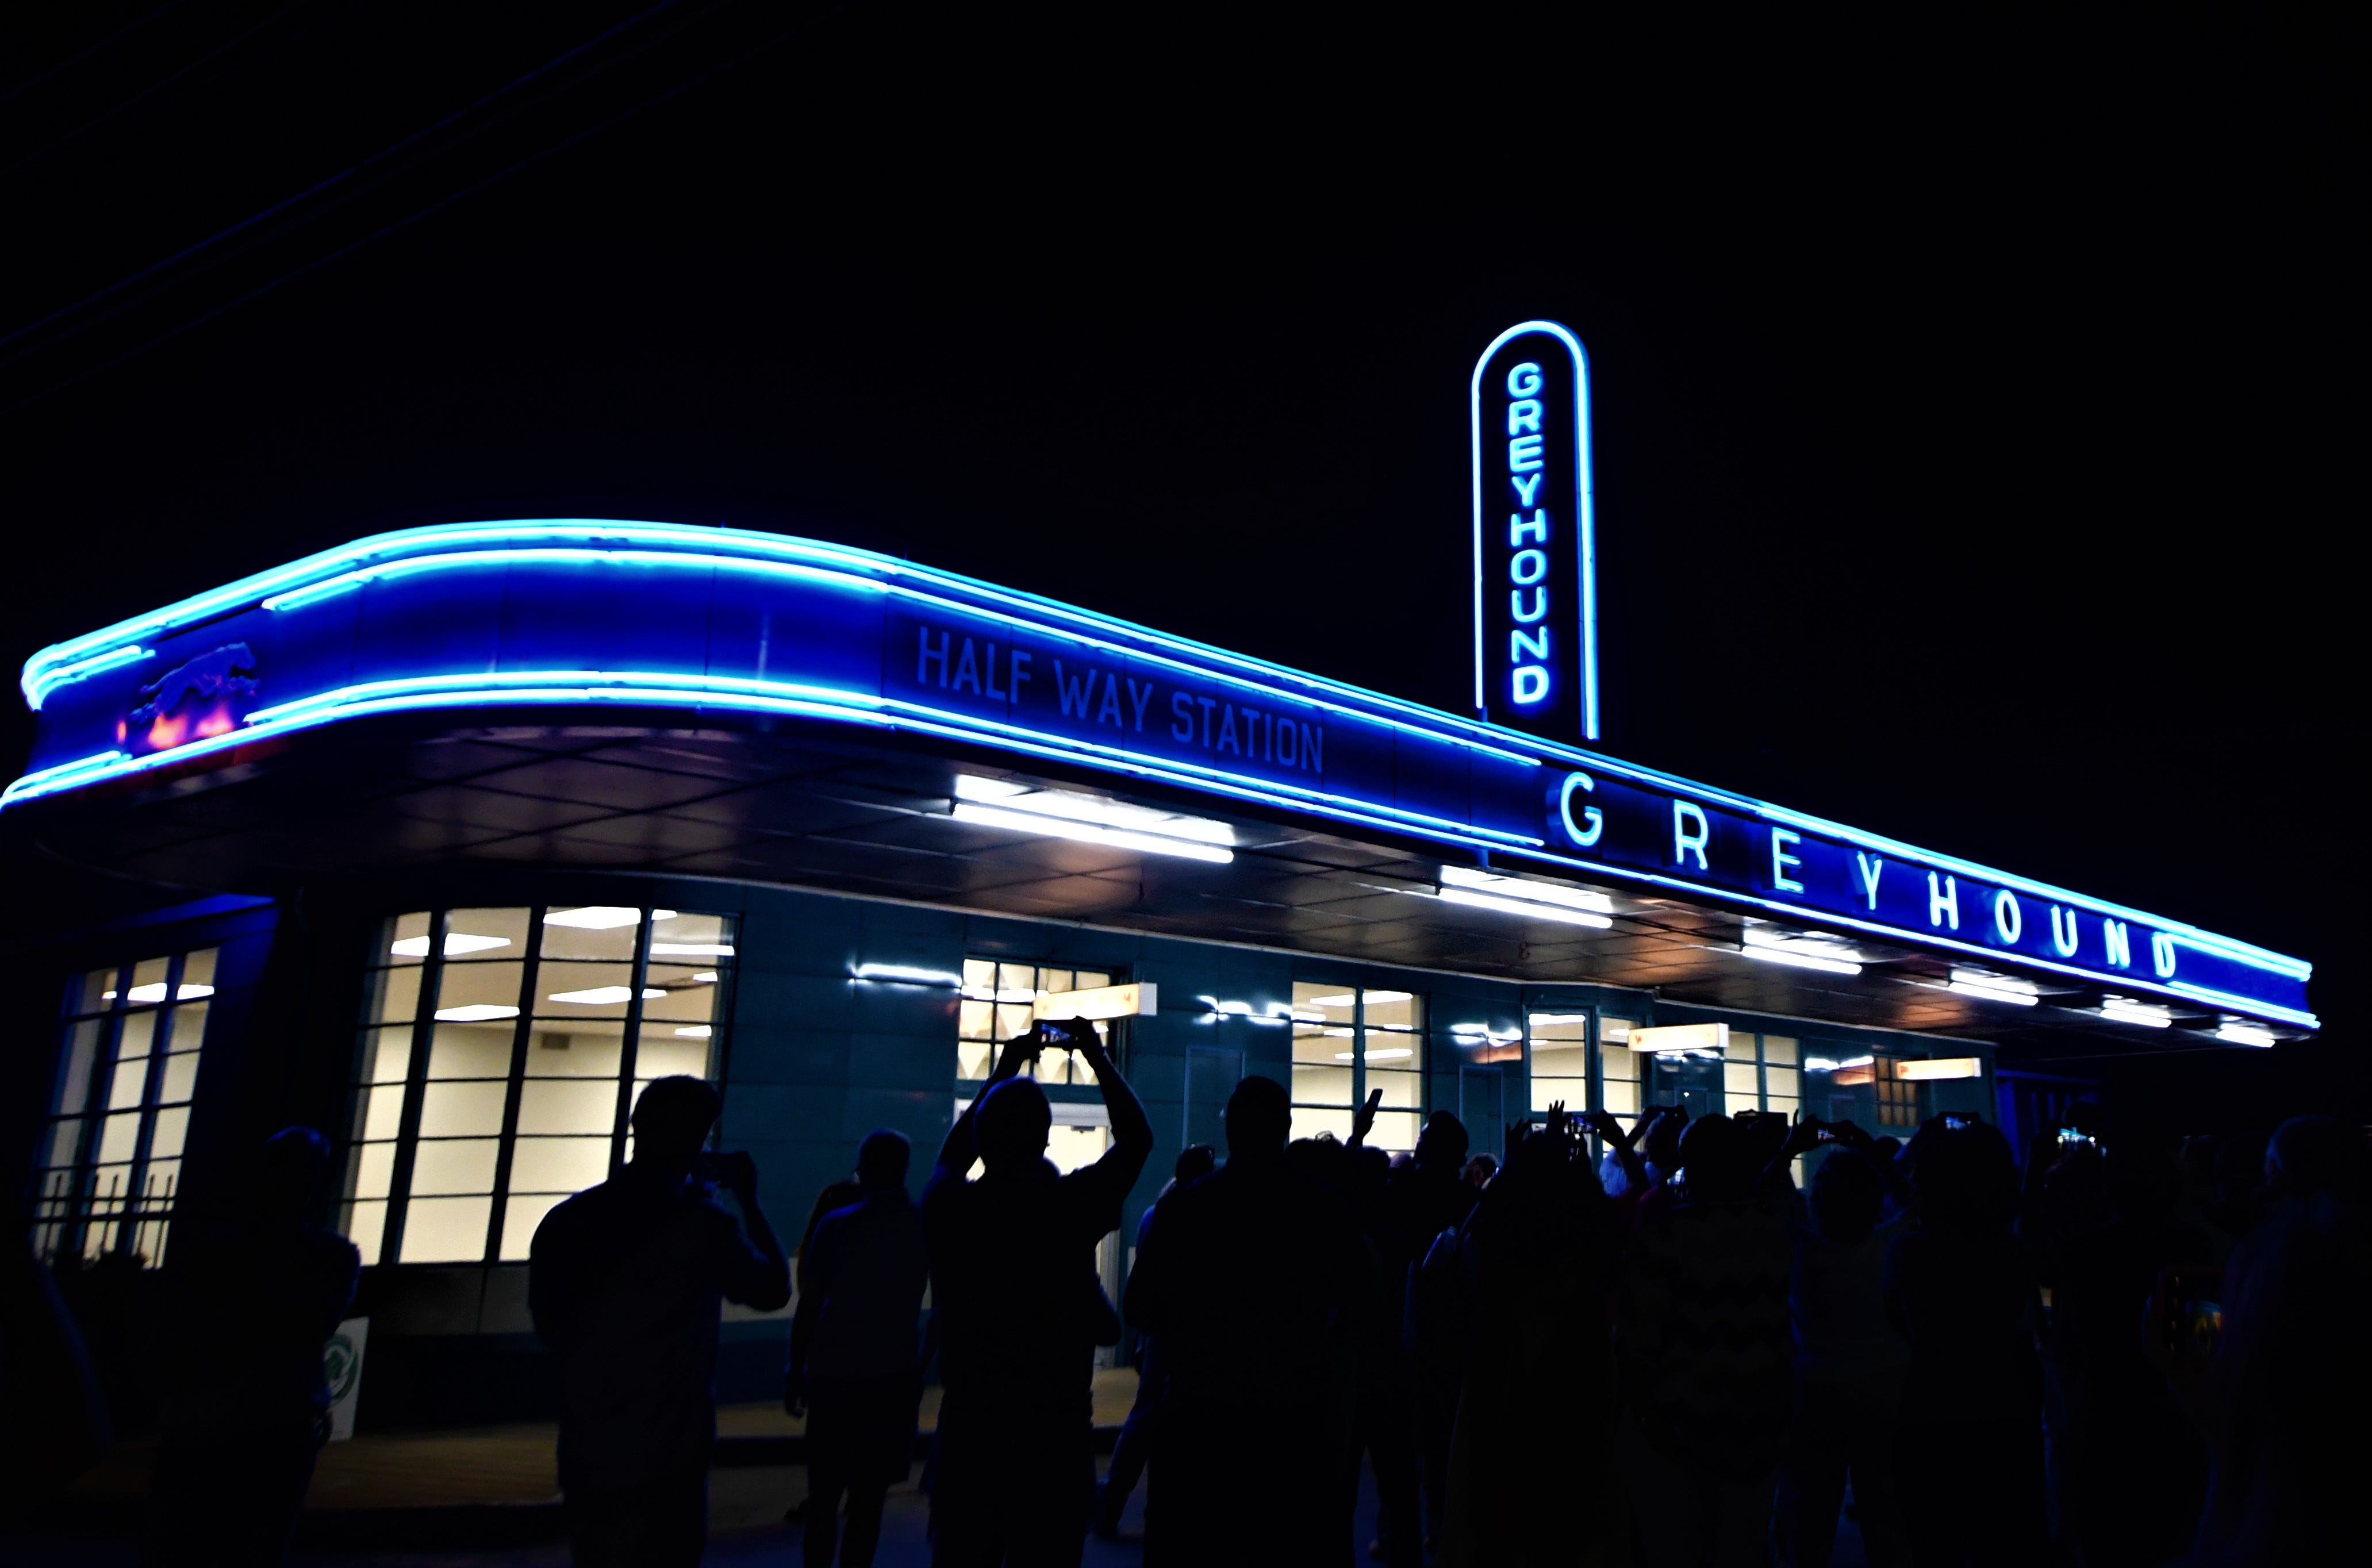 Jackson Greyhound Station Lights Up Downtown For First Time In 70 Years